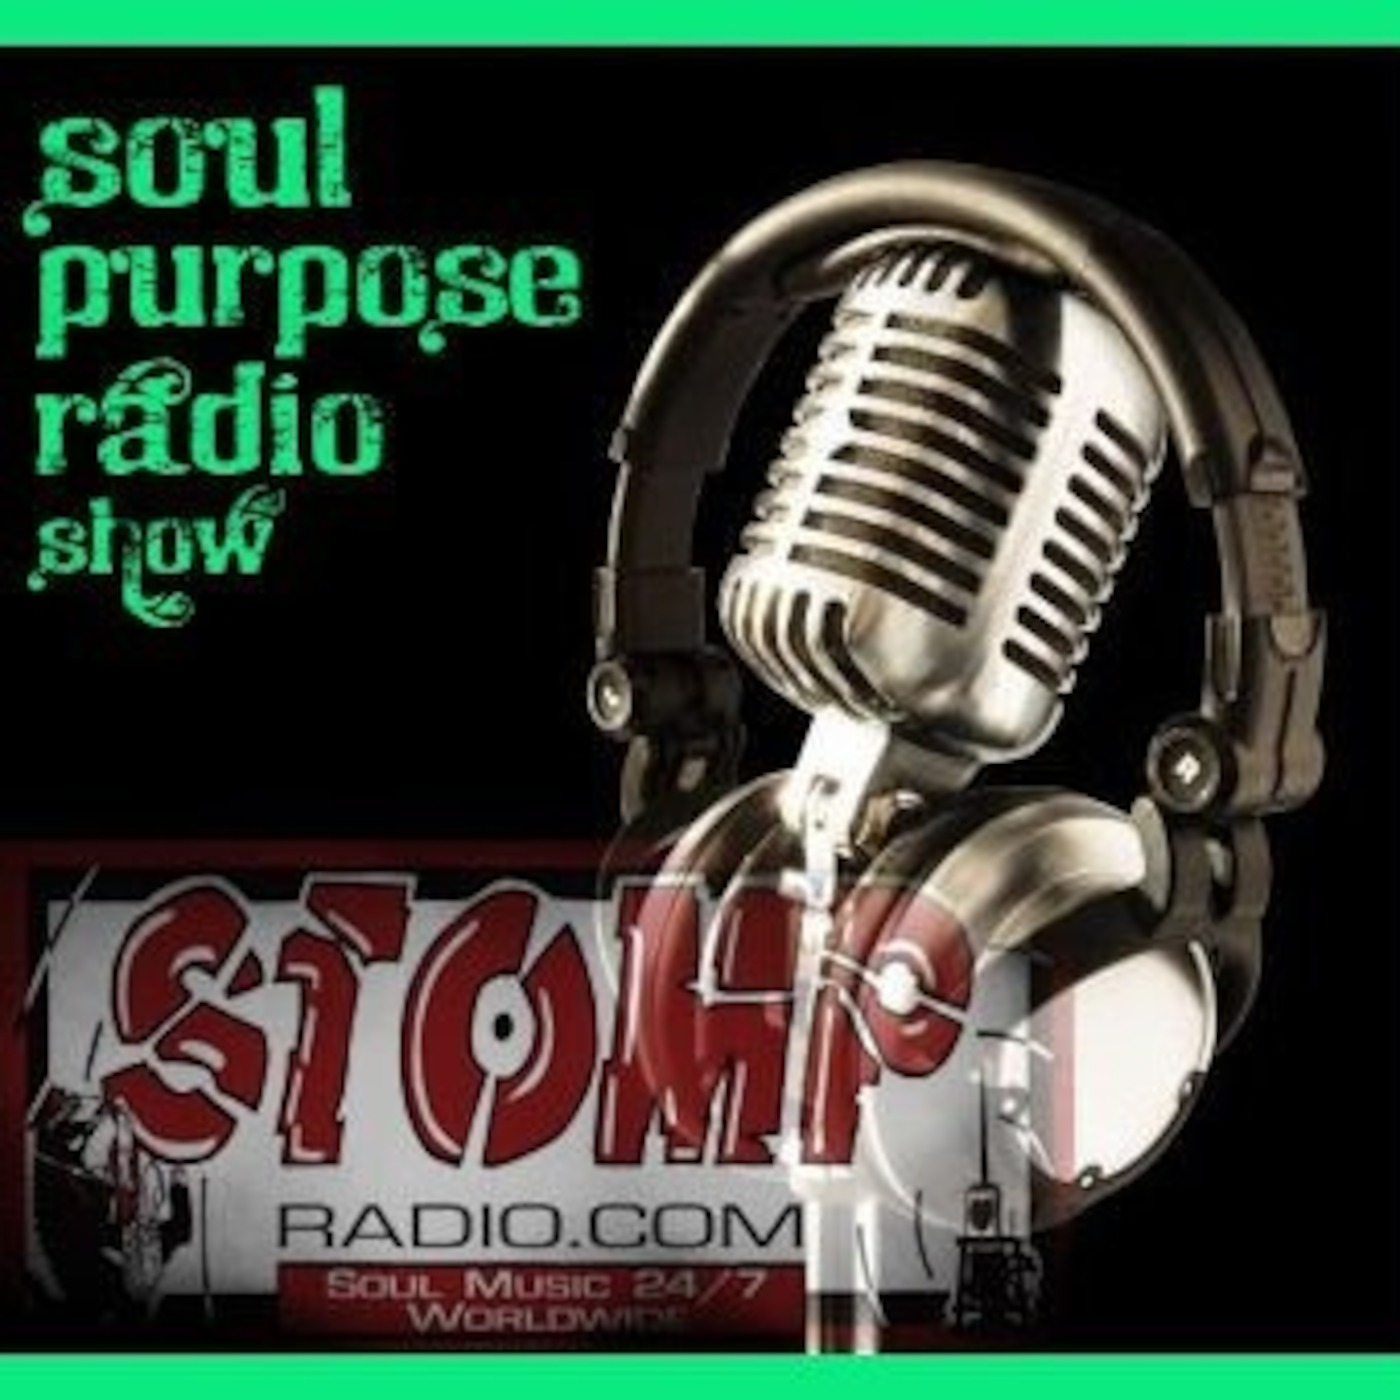 Mark Goddard's Soul Purpose Podcast